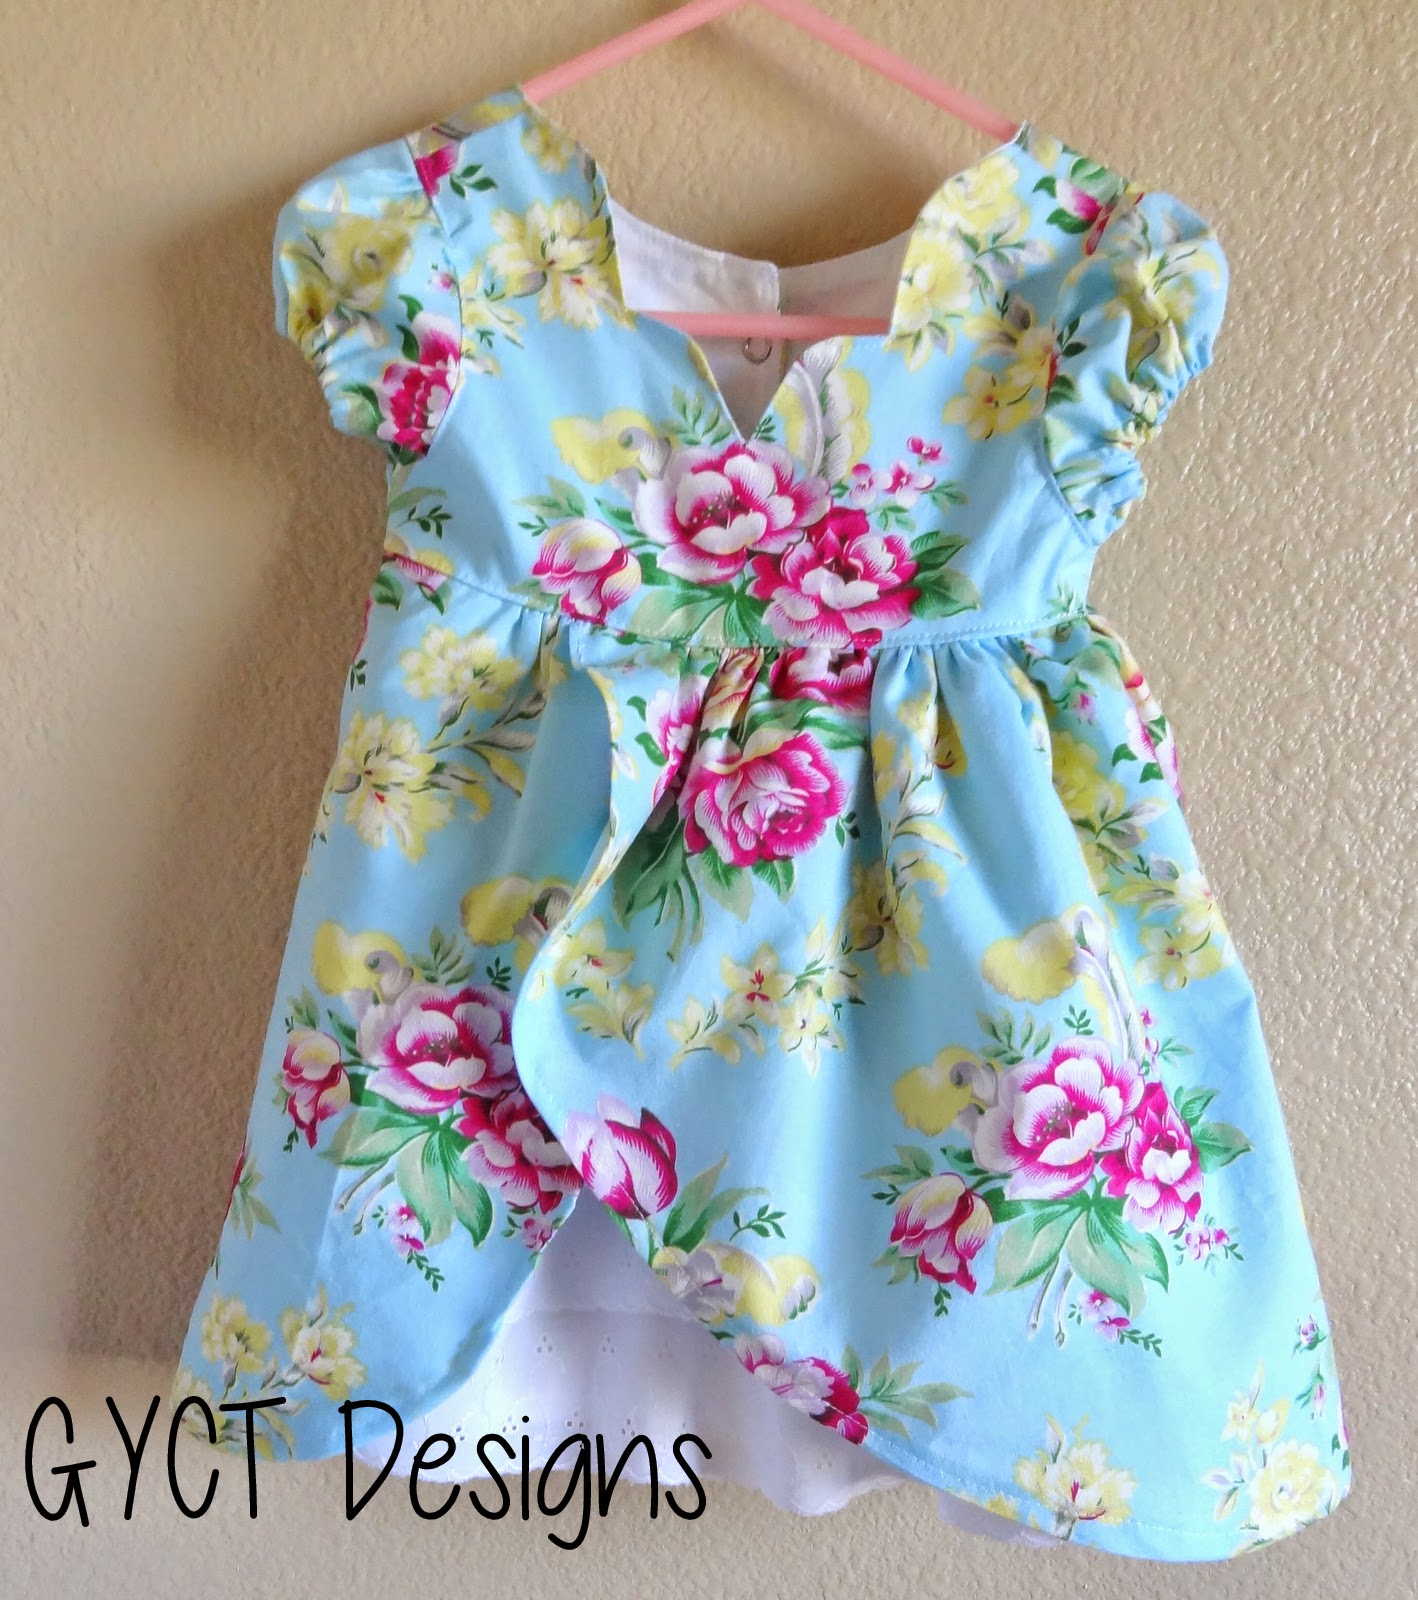 Girl dress with Ruffle Petticoat in floral fabrics